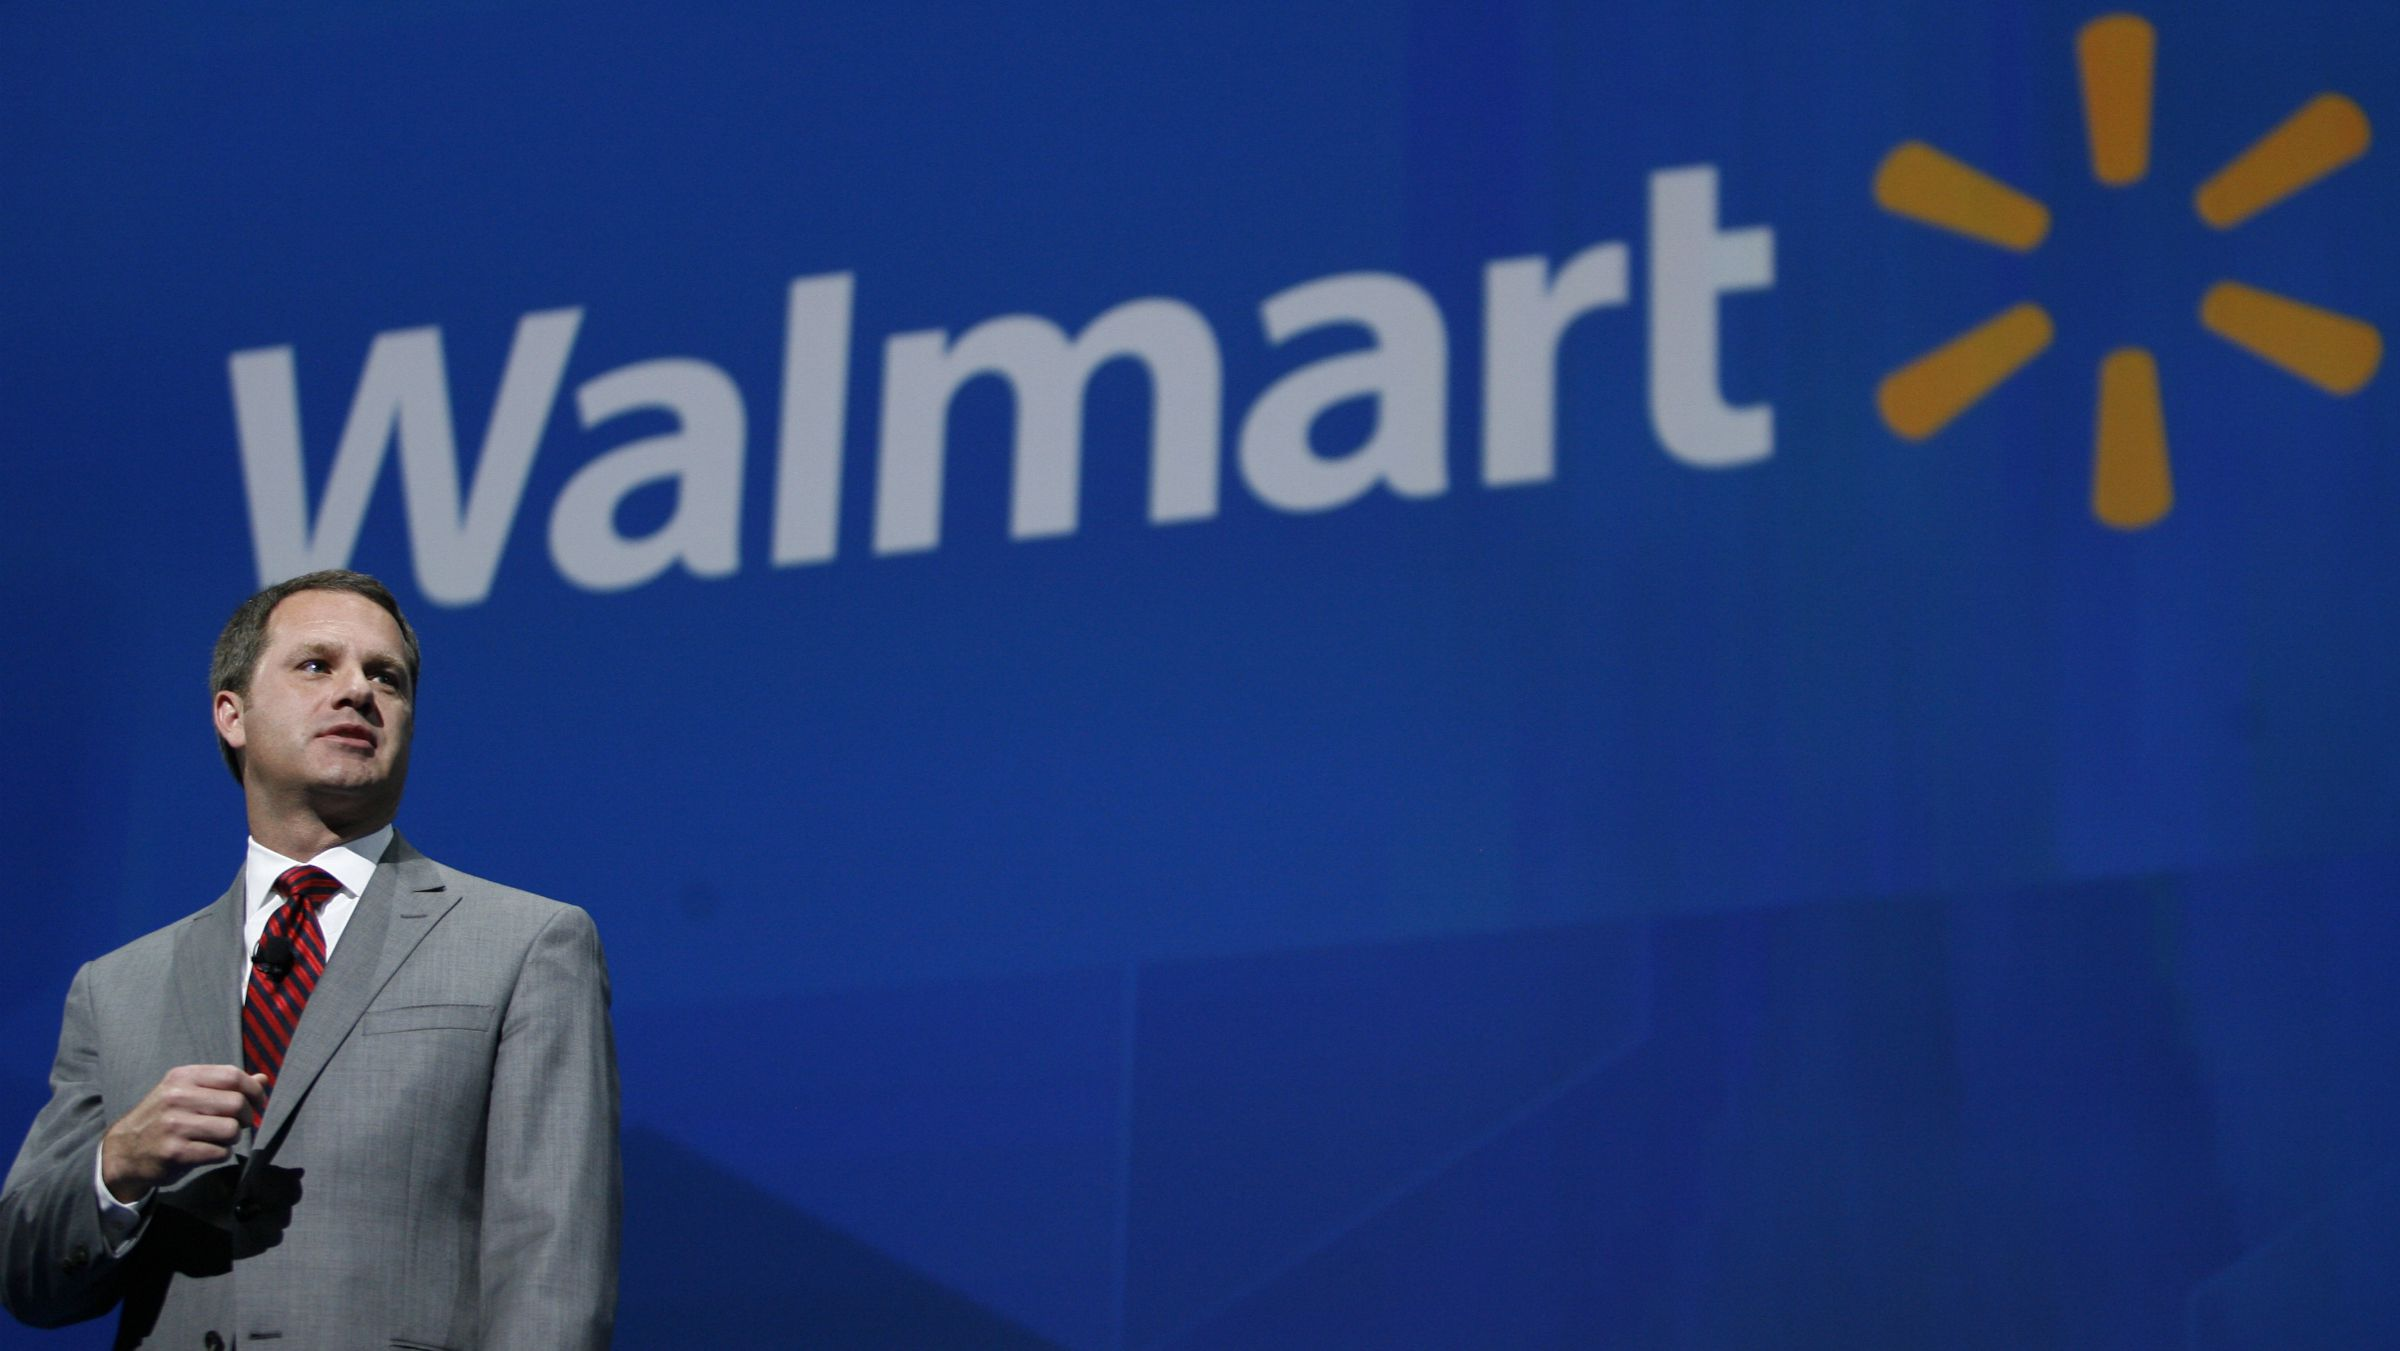 In this June 7, 2013 file photo, Doug McMillon, President and CEO, Wal-Mart International, speaks at the shareholders meeting in Fayetteville, Ark. Wal-Mart Stores on Monday, Nov. 25, 2013 announced that CEO and President Mike Duke is stepping down from those posts, and named McMillon as his successor, effective Feb. 1, 2014.